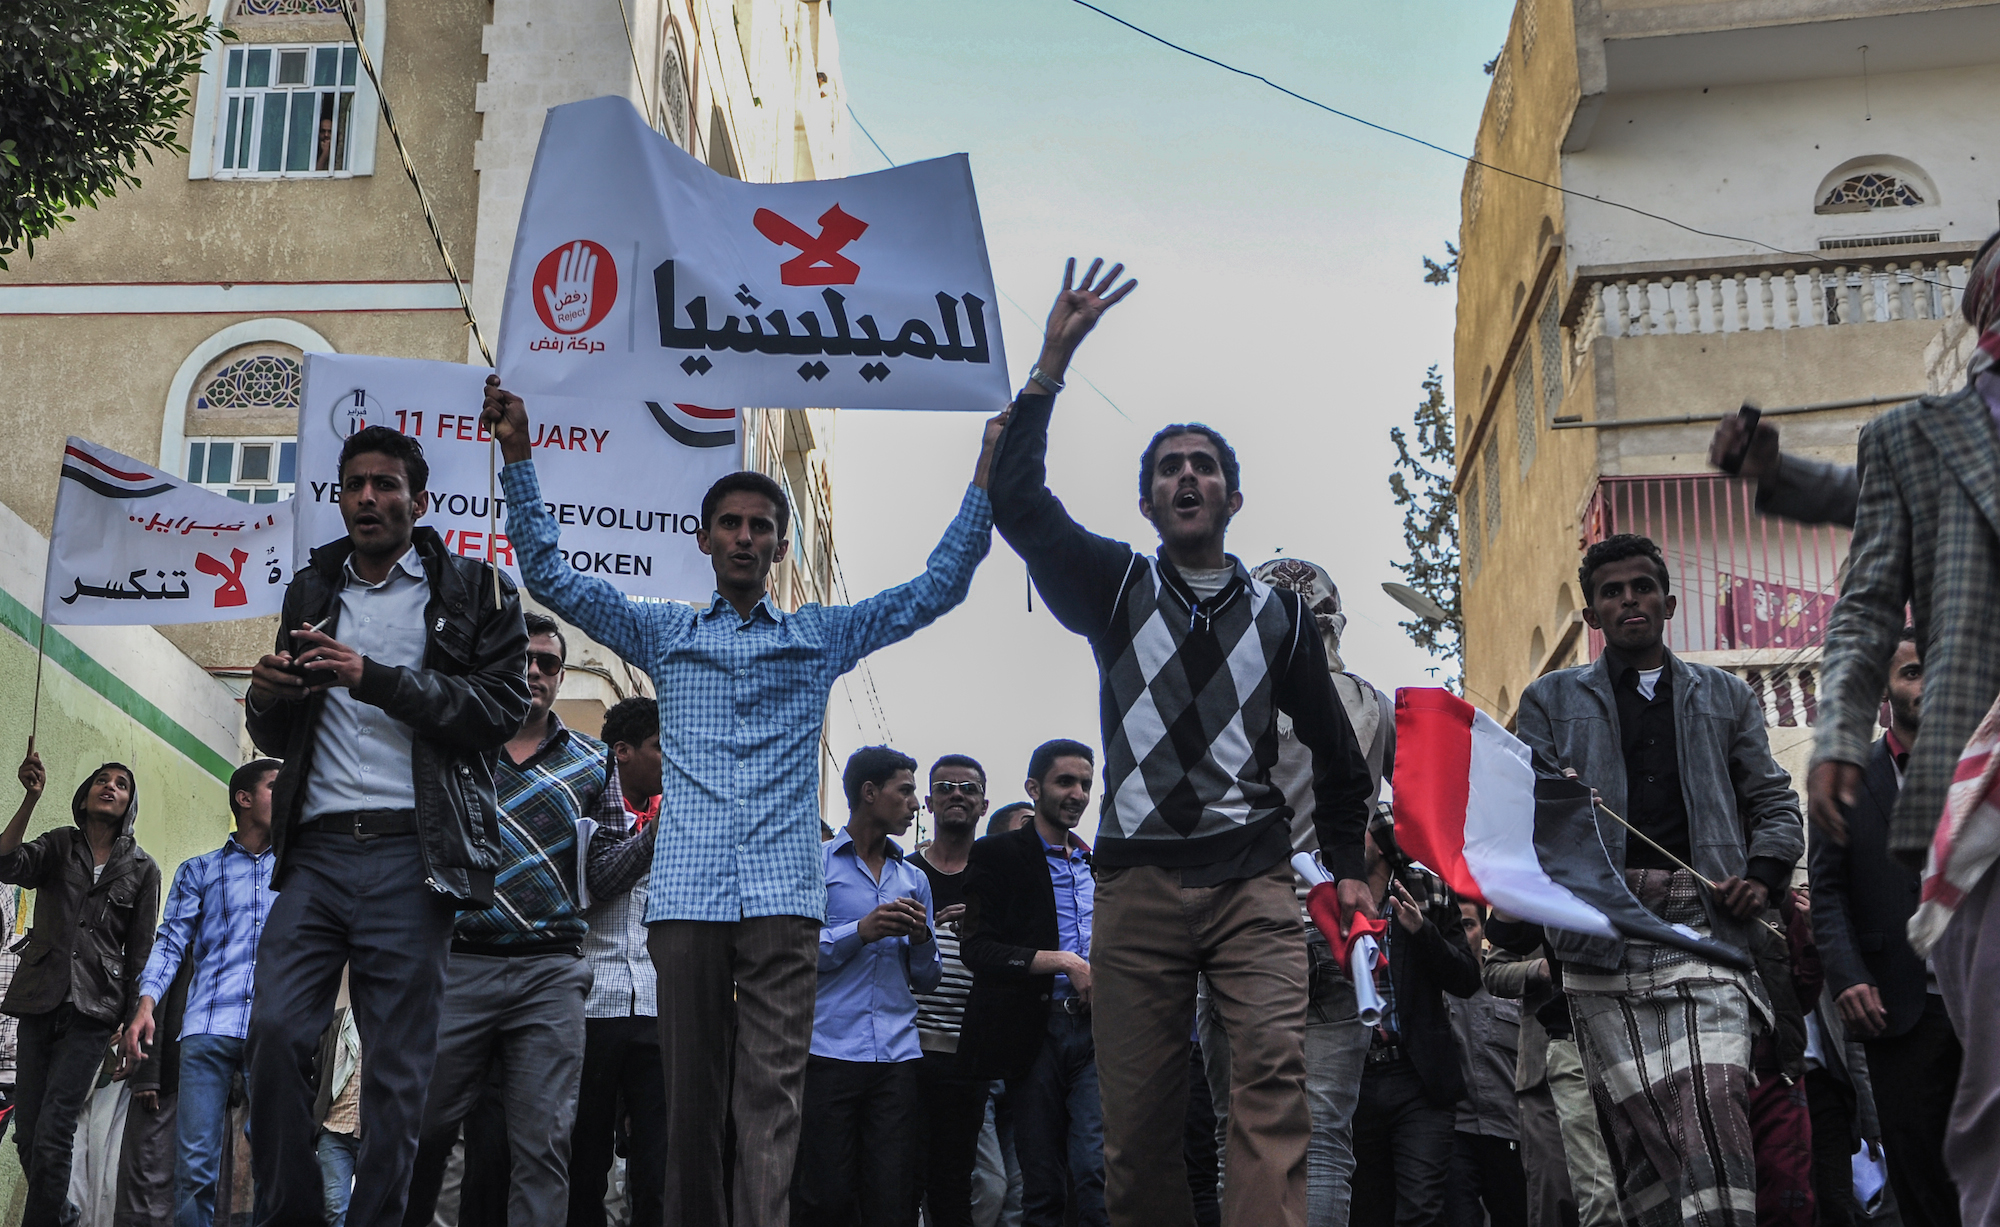 An anti-Houthi protest in the Yemeni city of Sana'a after the withdrawal of embassy staff from the US, UK and other countries on February 11, 2015.